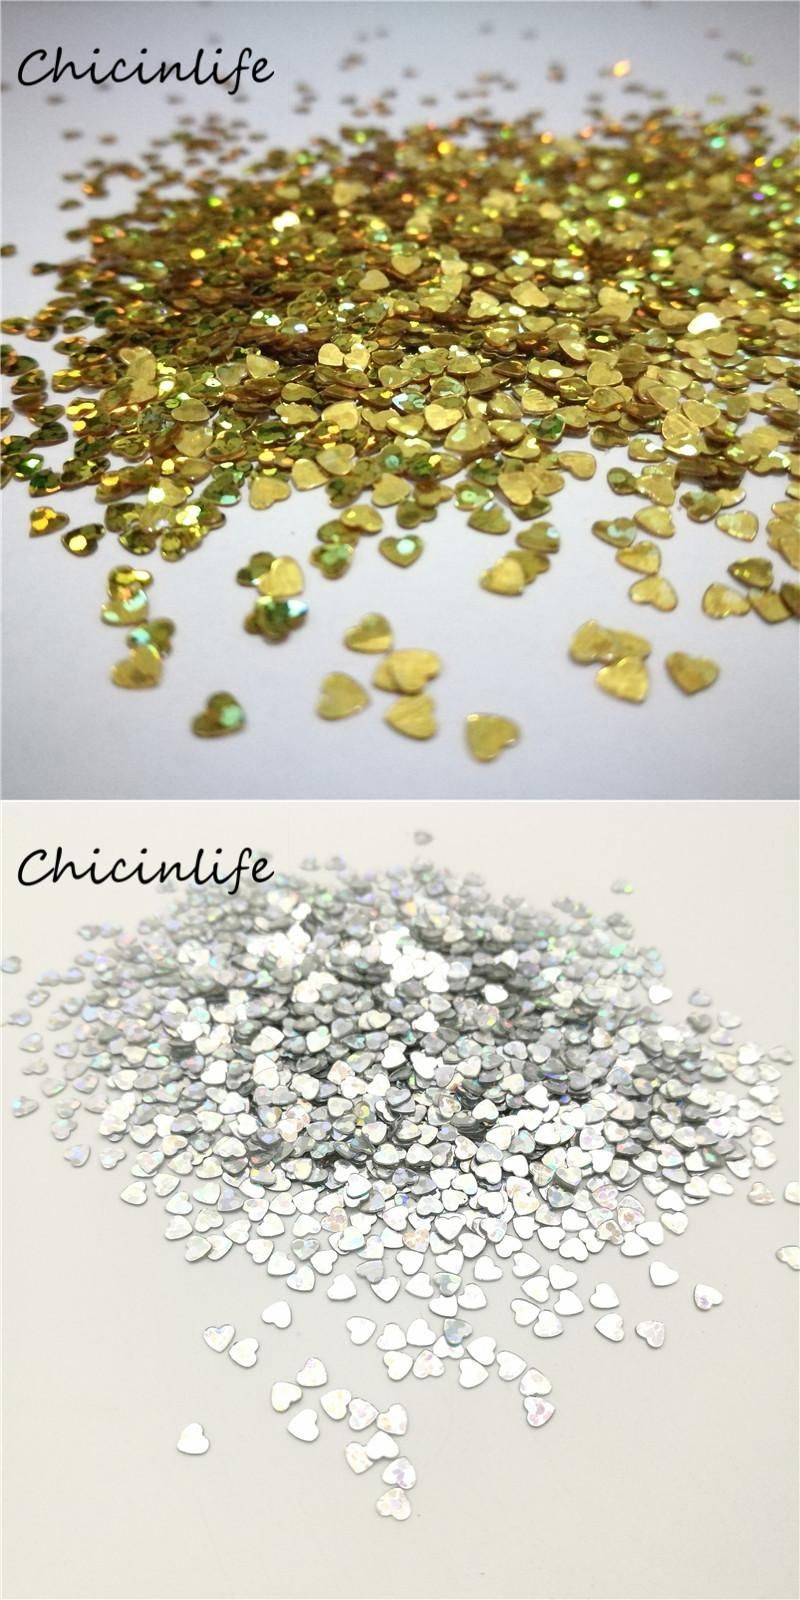 Visit to Buy] Chicinlife 1000pcs/lot Gold/Silver 3mm Wedding Heart ...